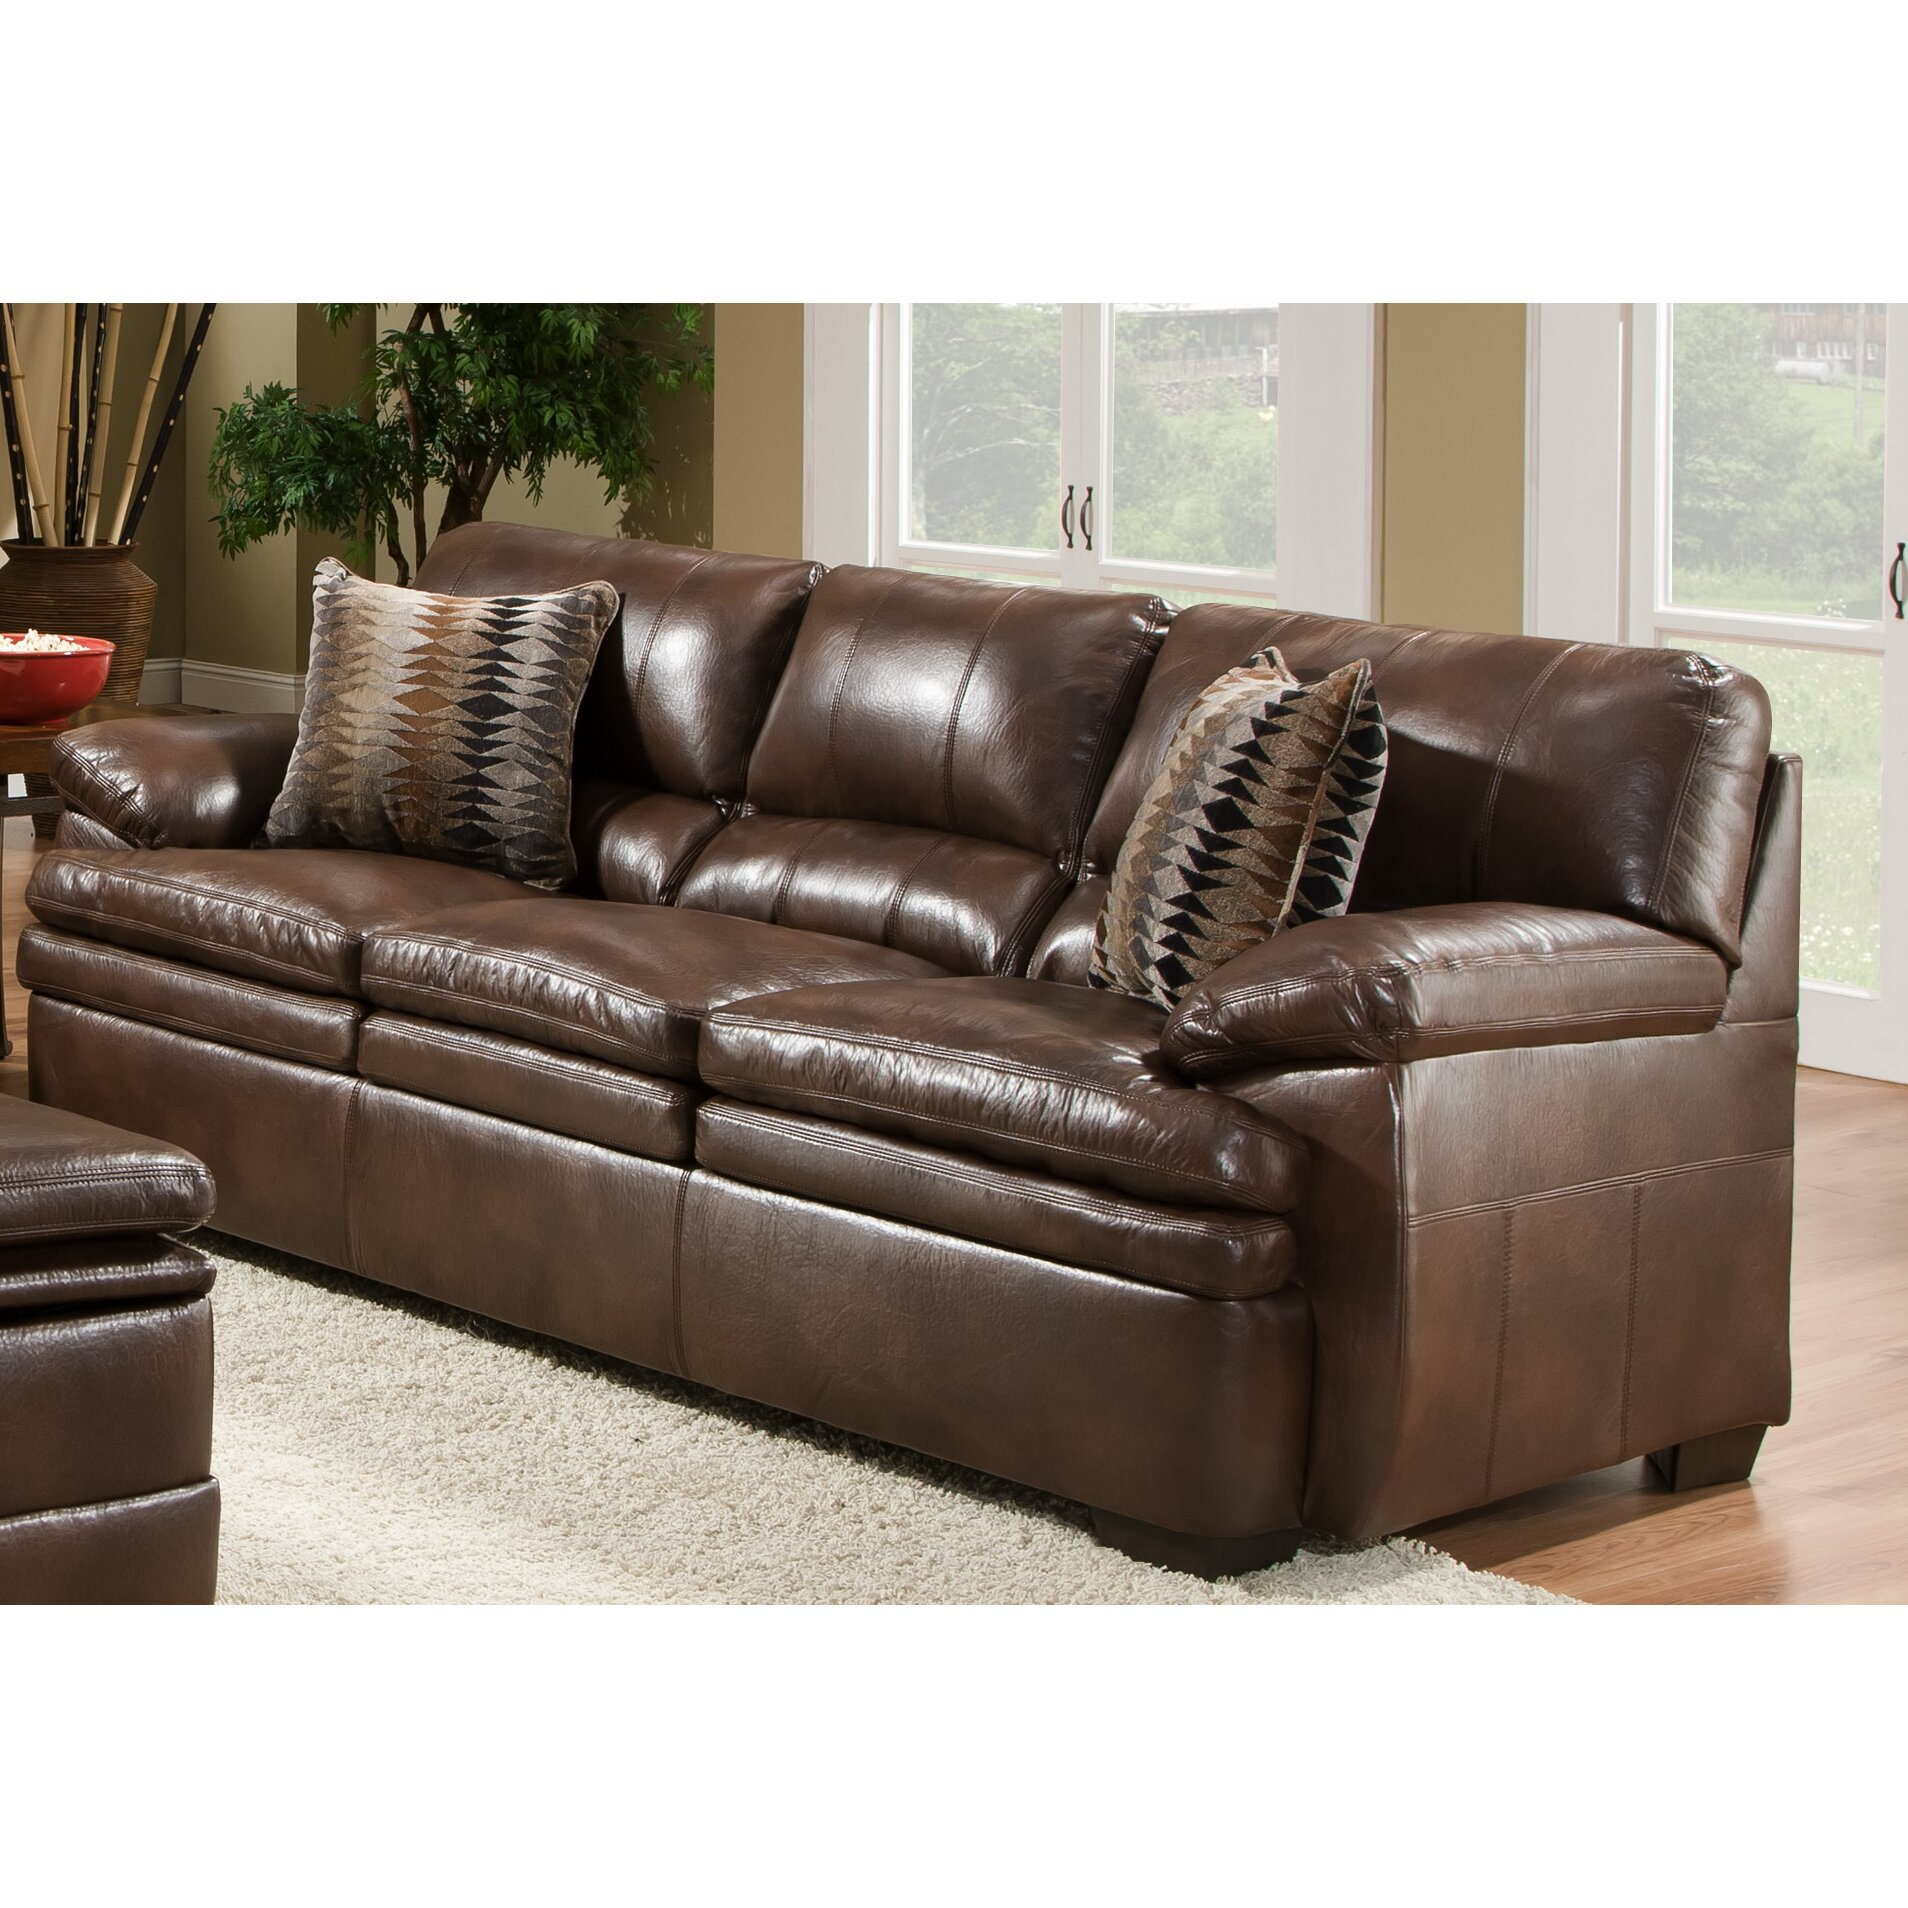 Simmons Upholstery Editor Living Room Collection Reviews Wayfair